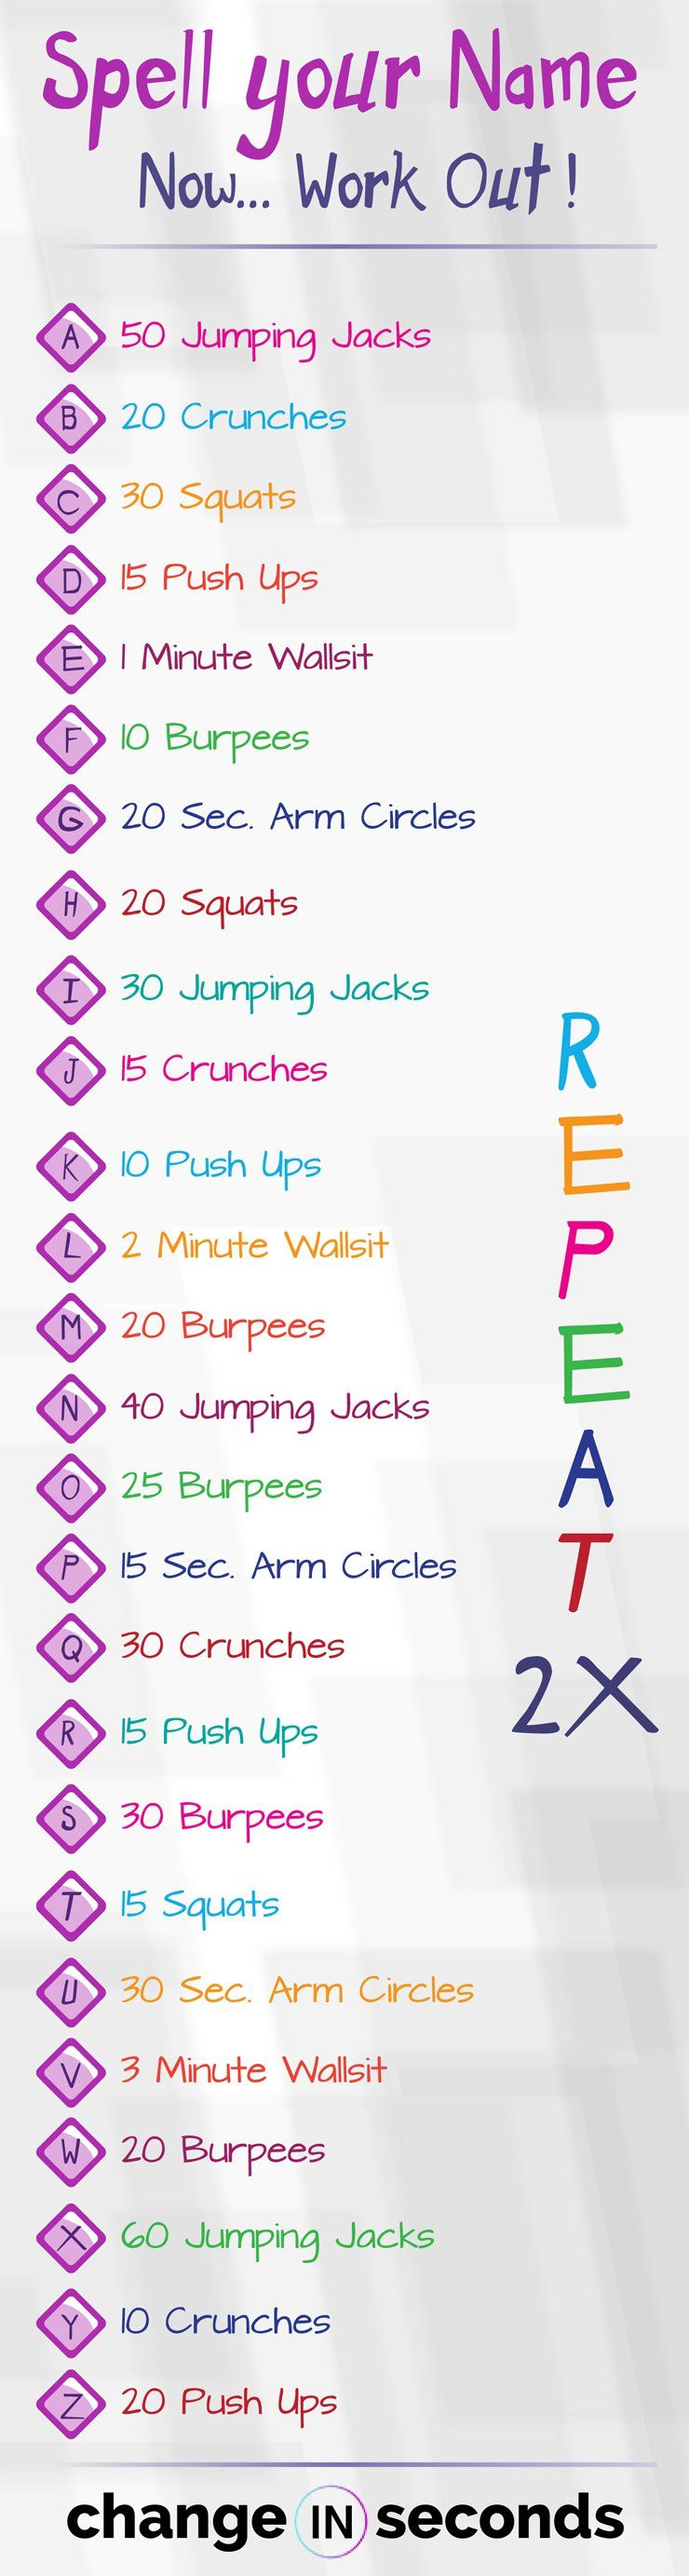 Spell Your Name Workout Challenge – Get In Shape Fast (Download PDF)